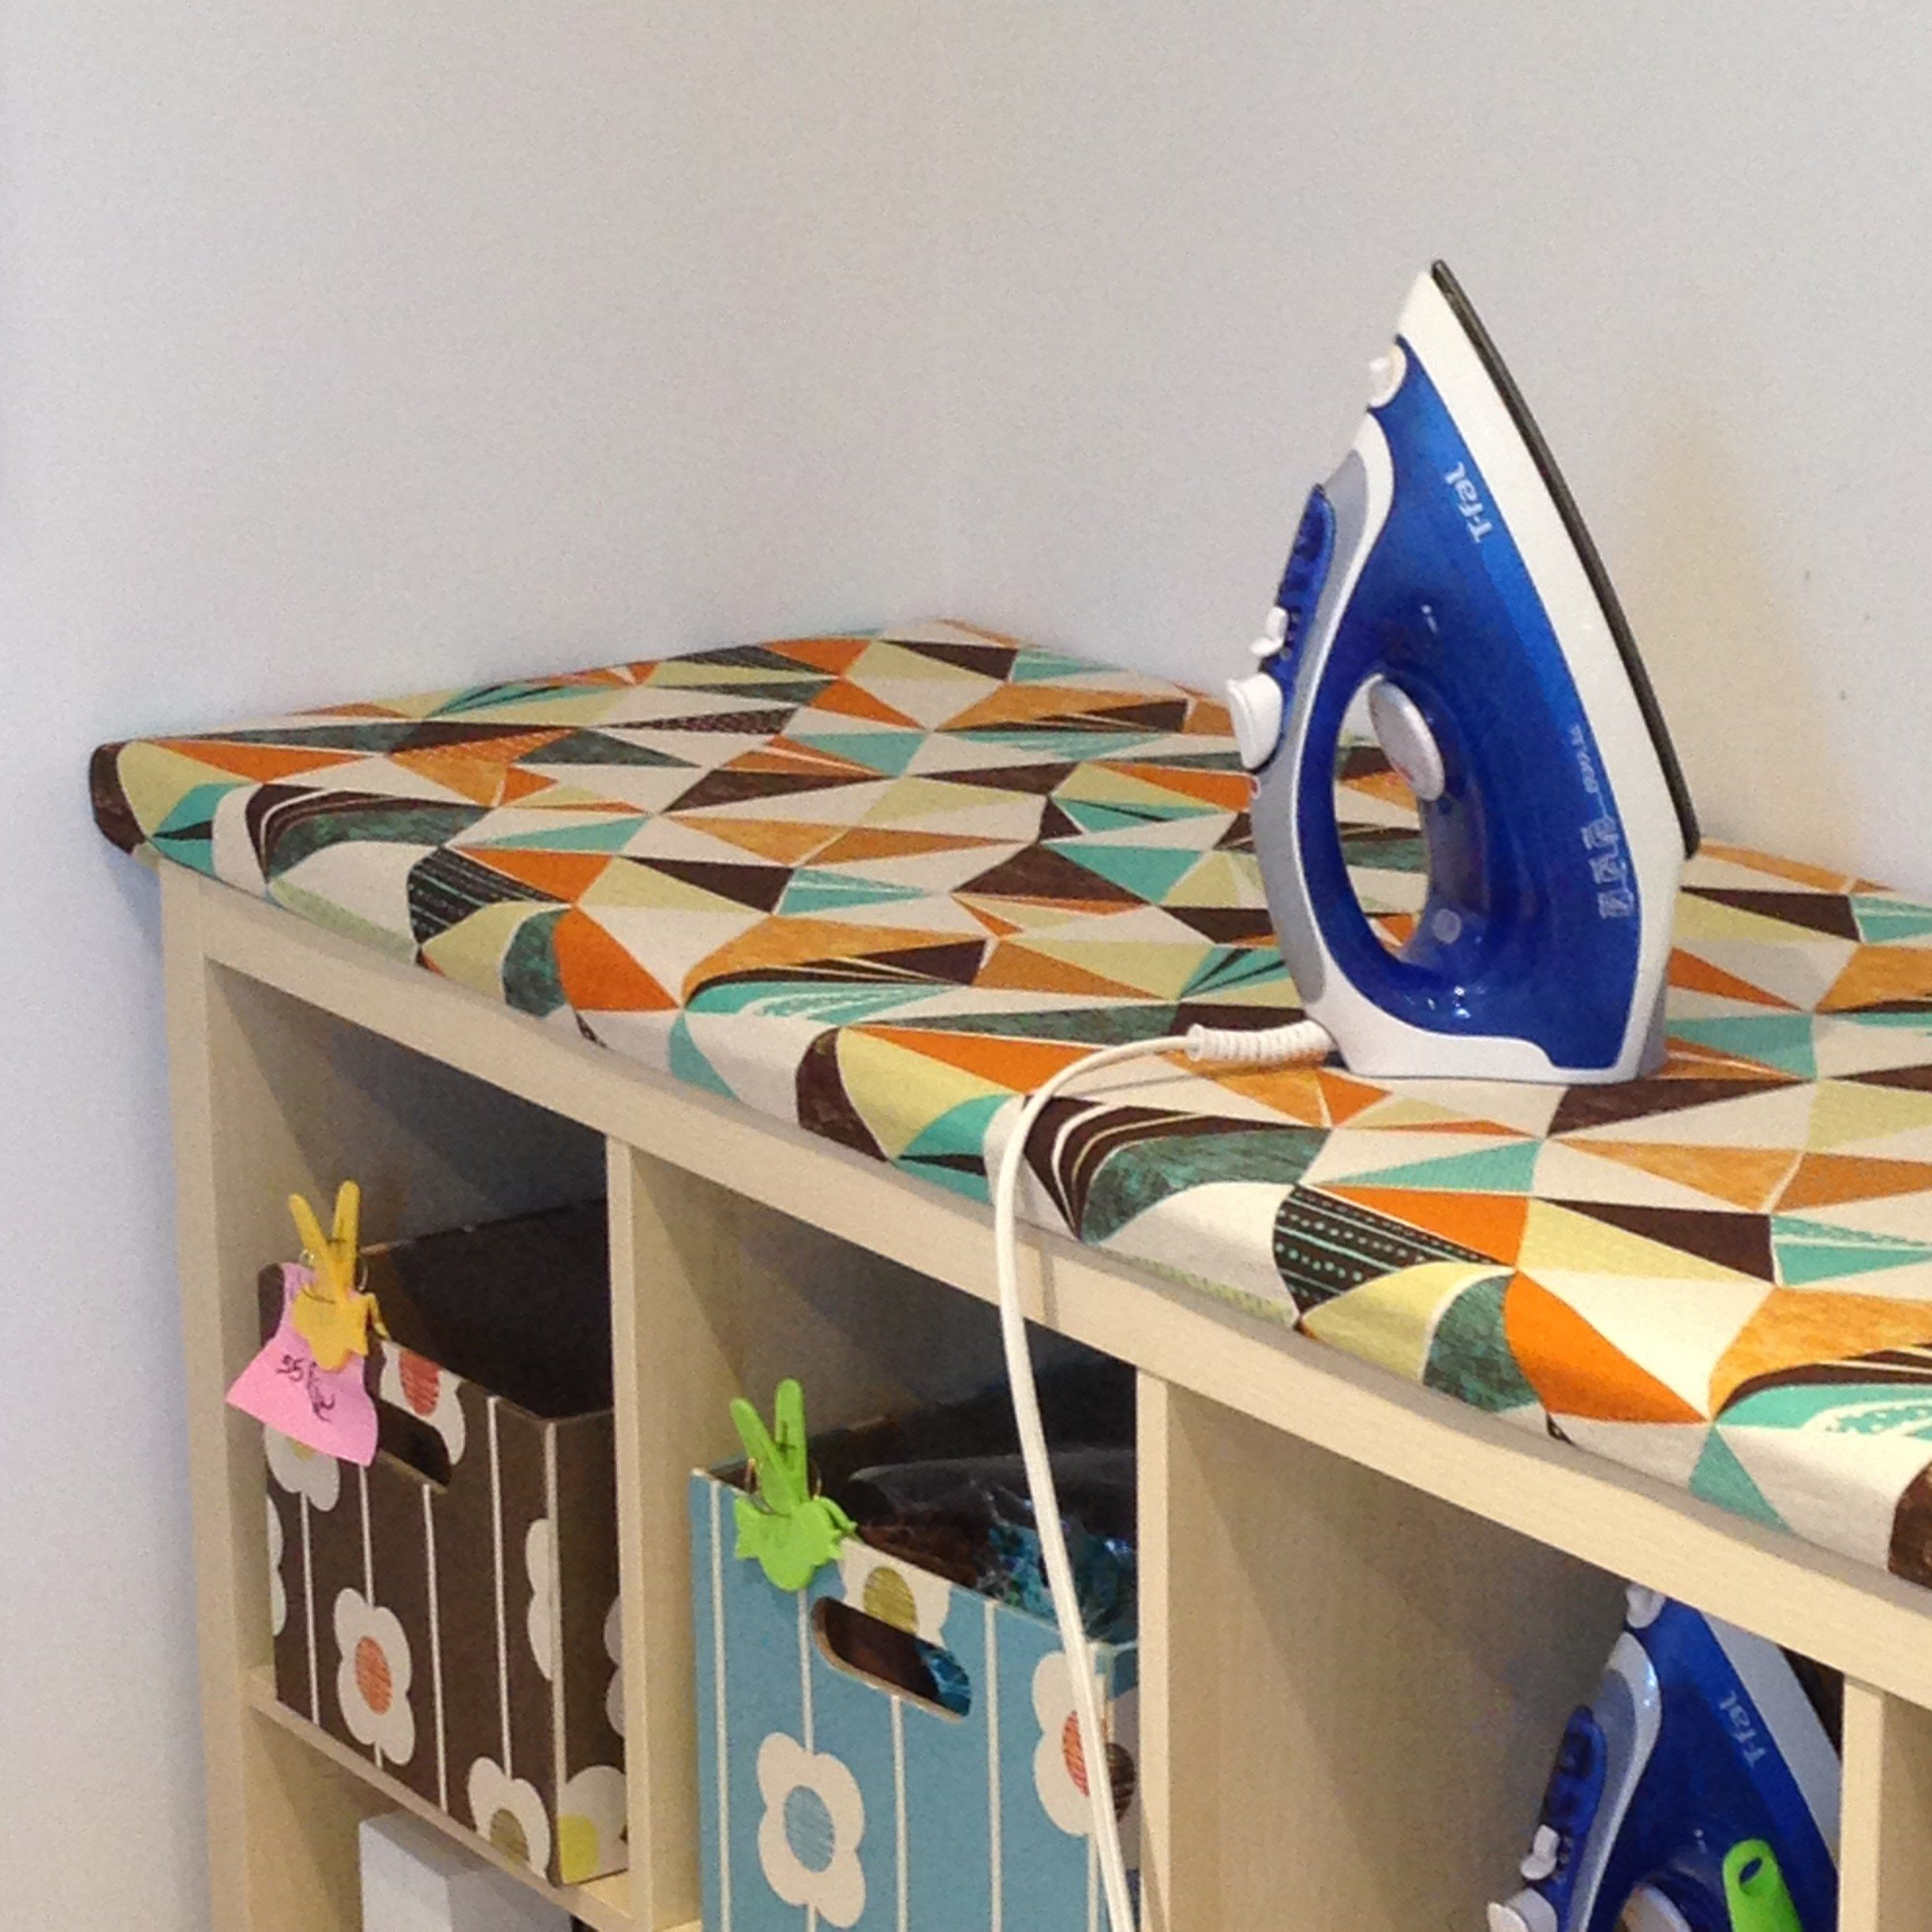 SEW KATIE DID:Ironing Board:Station Tutorial | Sewing spaces ... : quilting ironing pad - Adamdwight.com